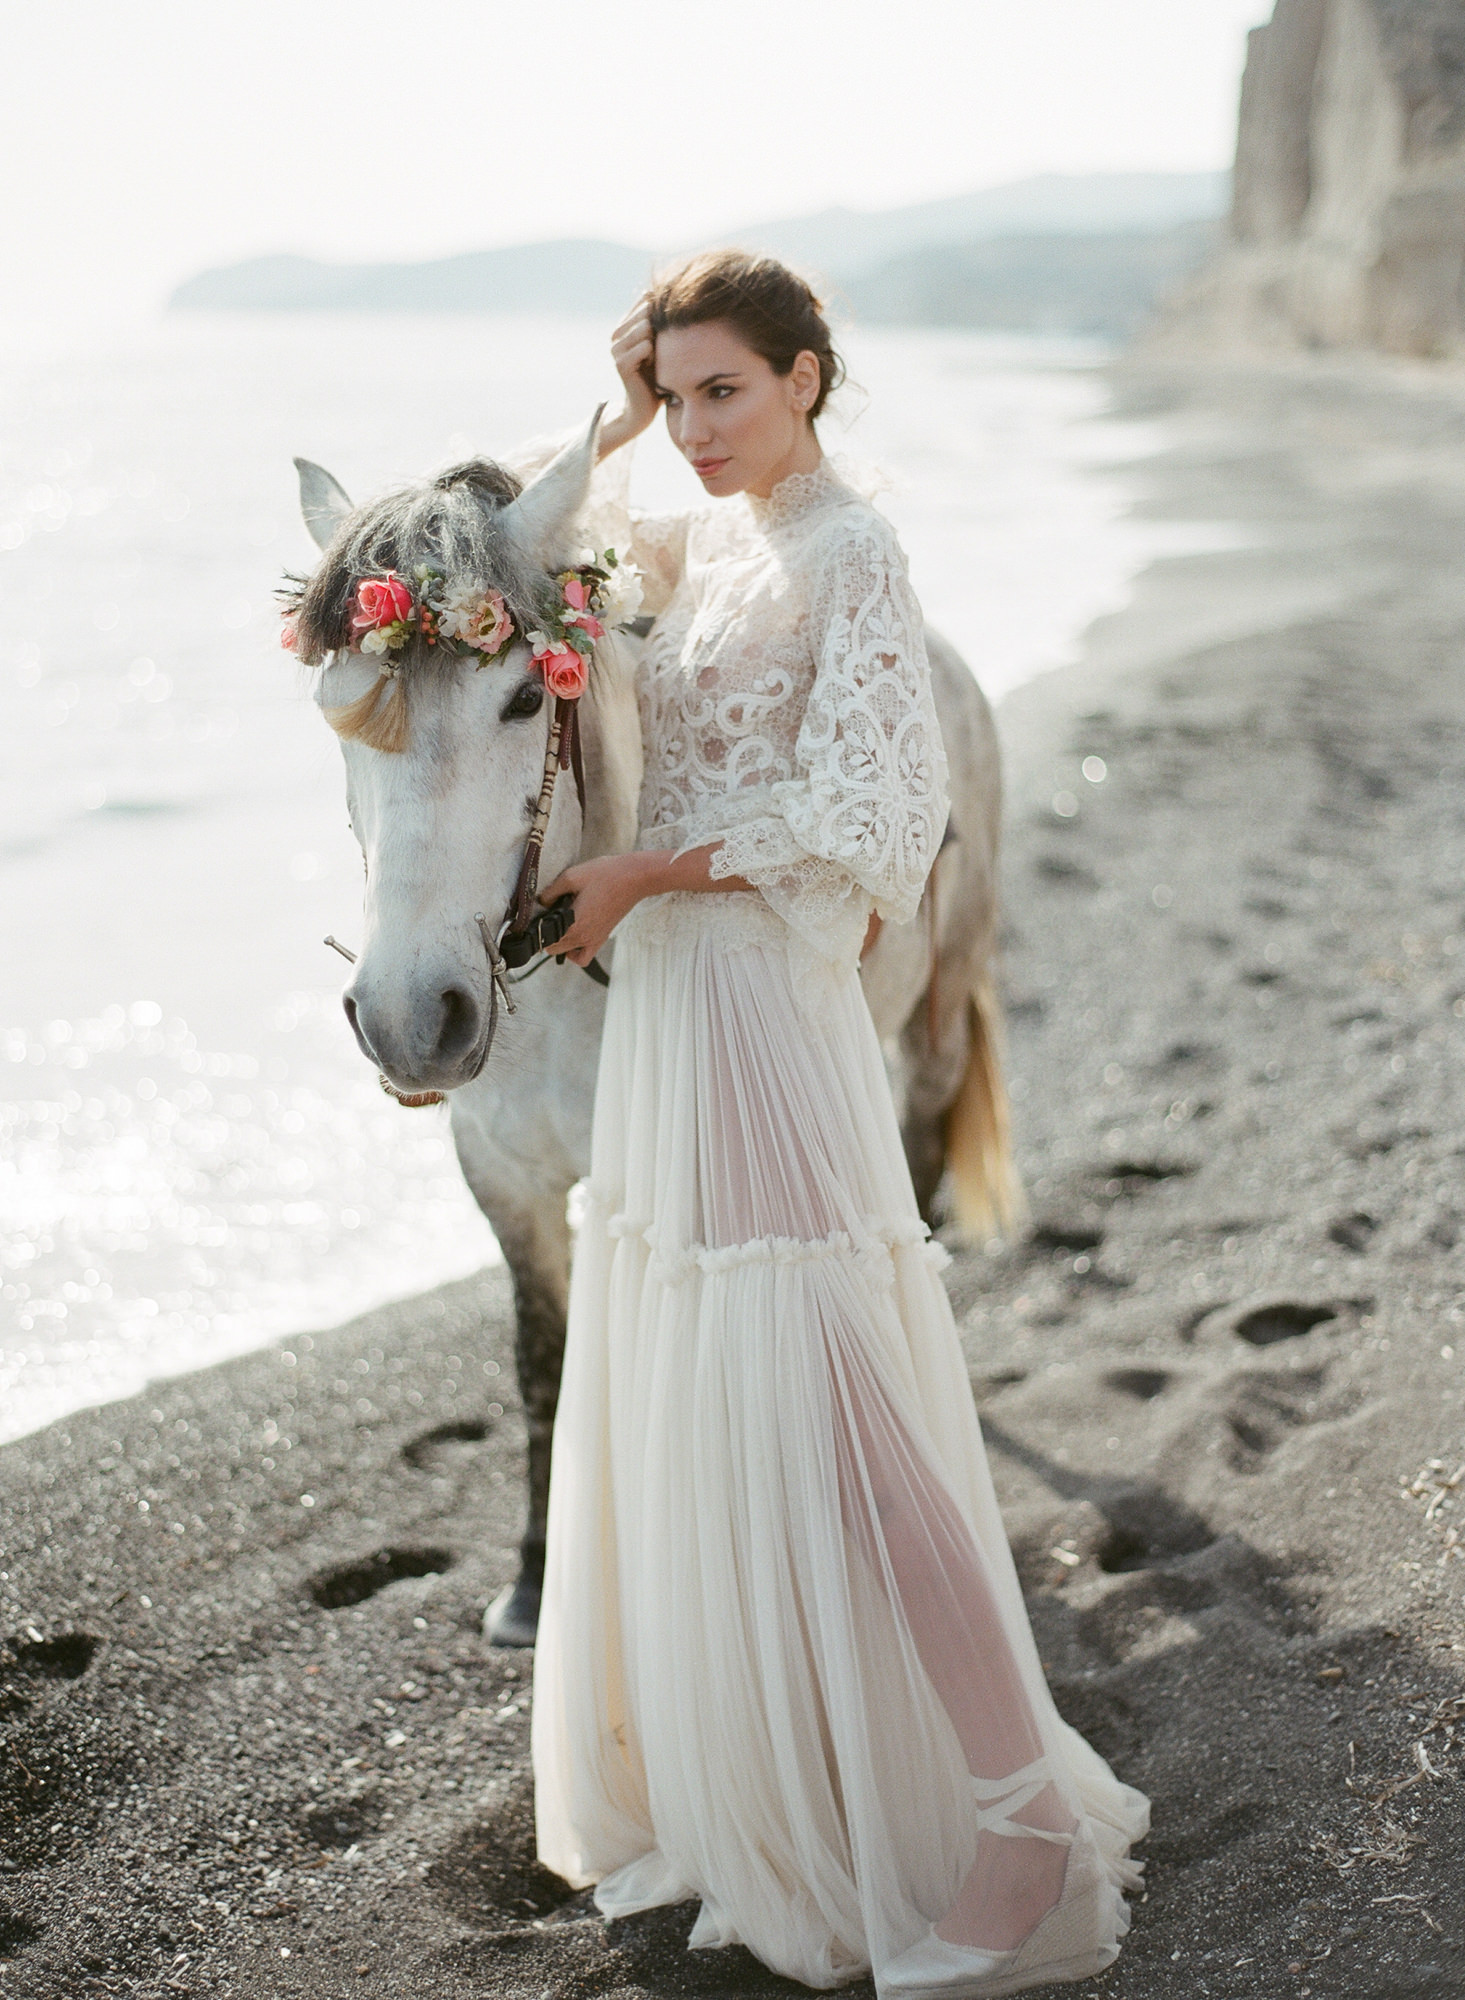 Bride on beach with vintage lace high neck gown - photo by Gianluca Adovasio